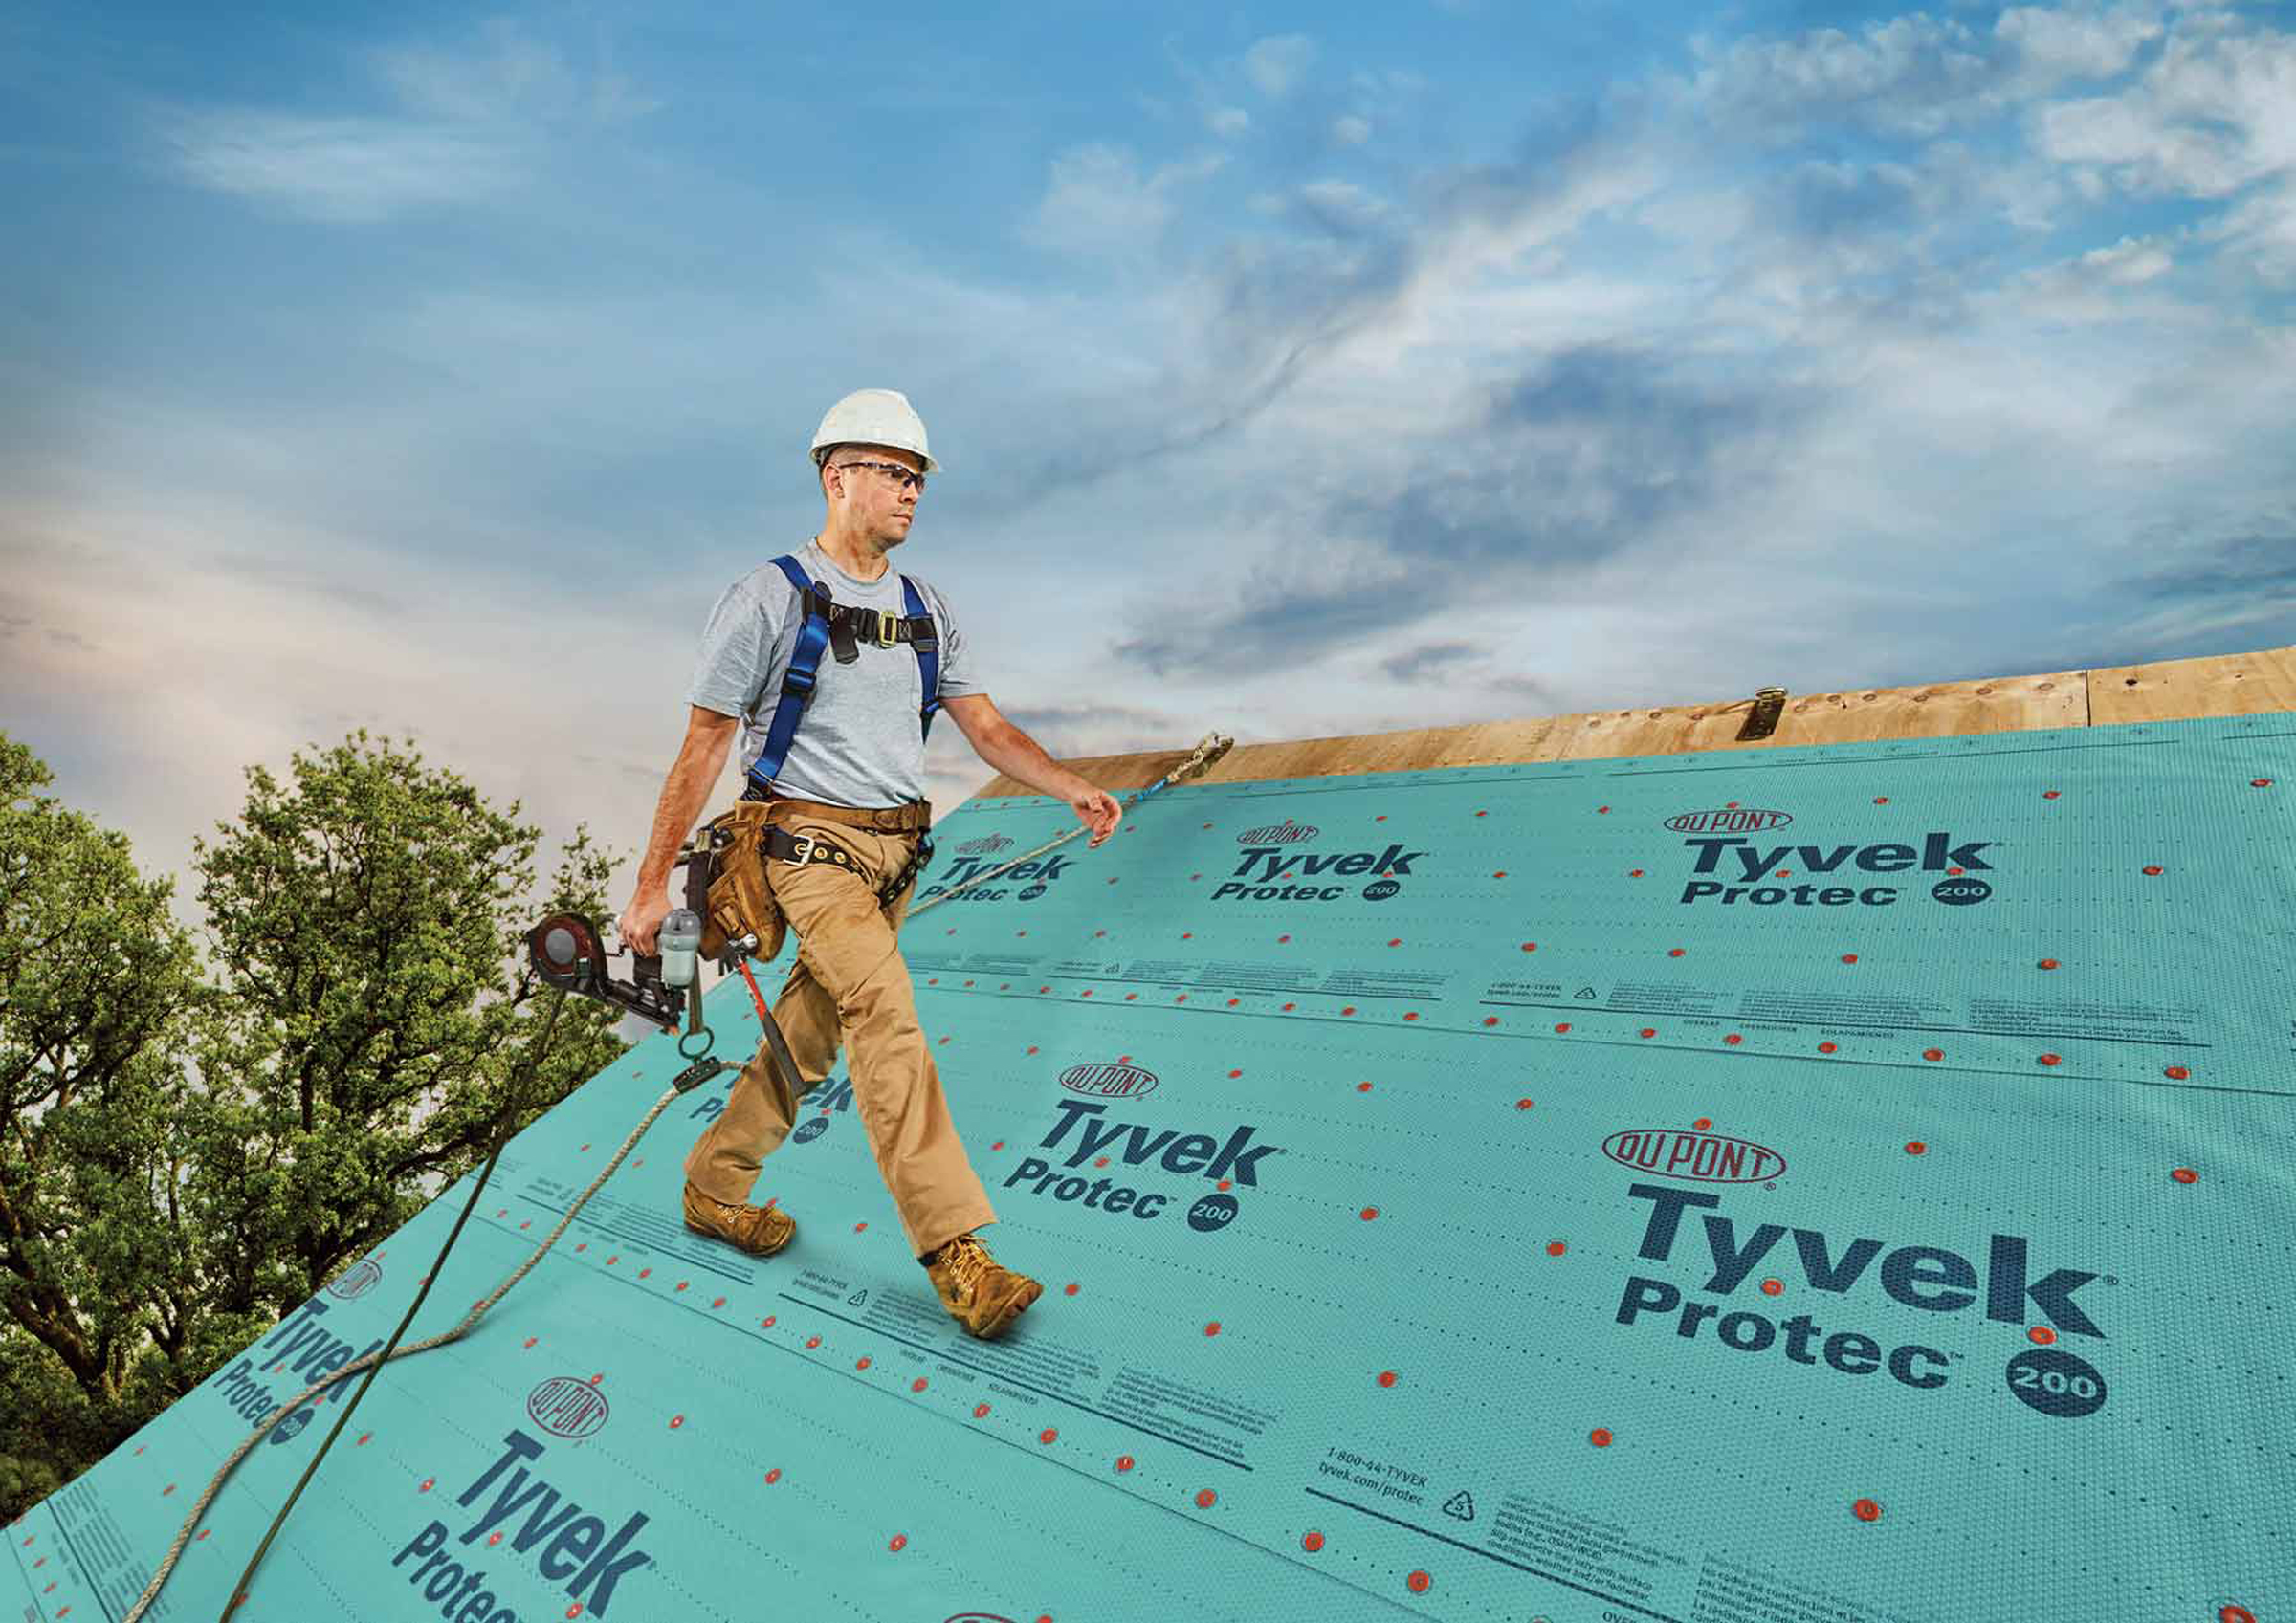 Dupont Launches New Tyvek 174 Protec Roofing Underlayments